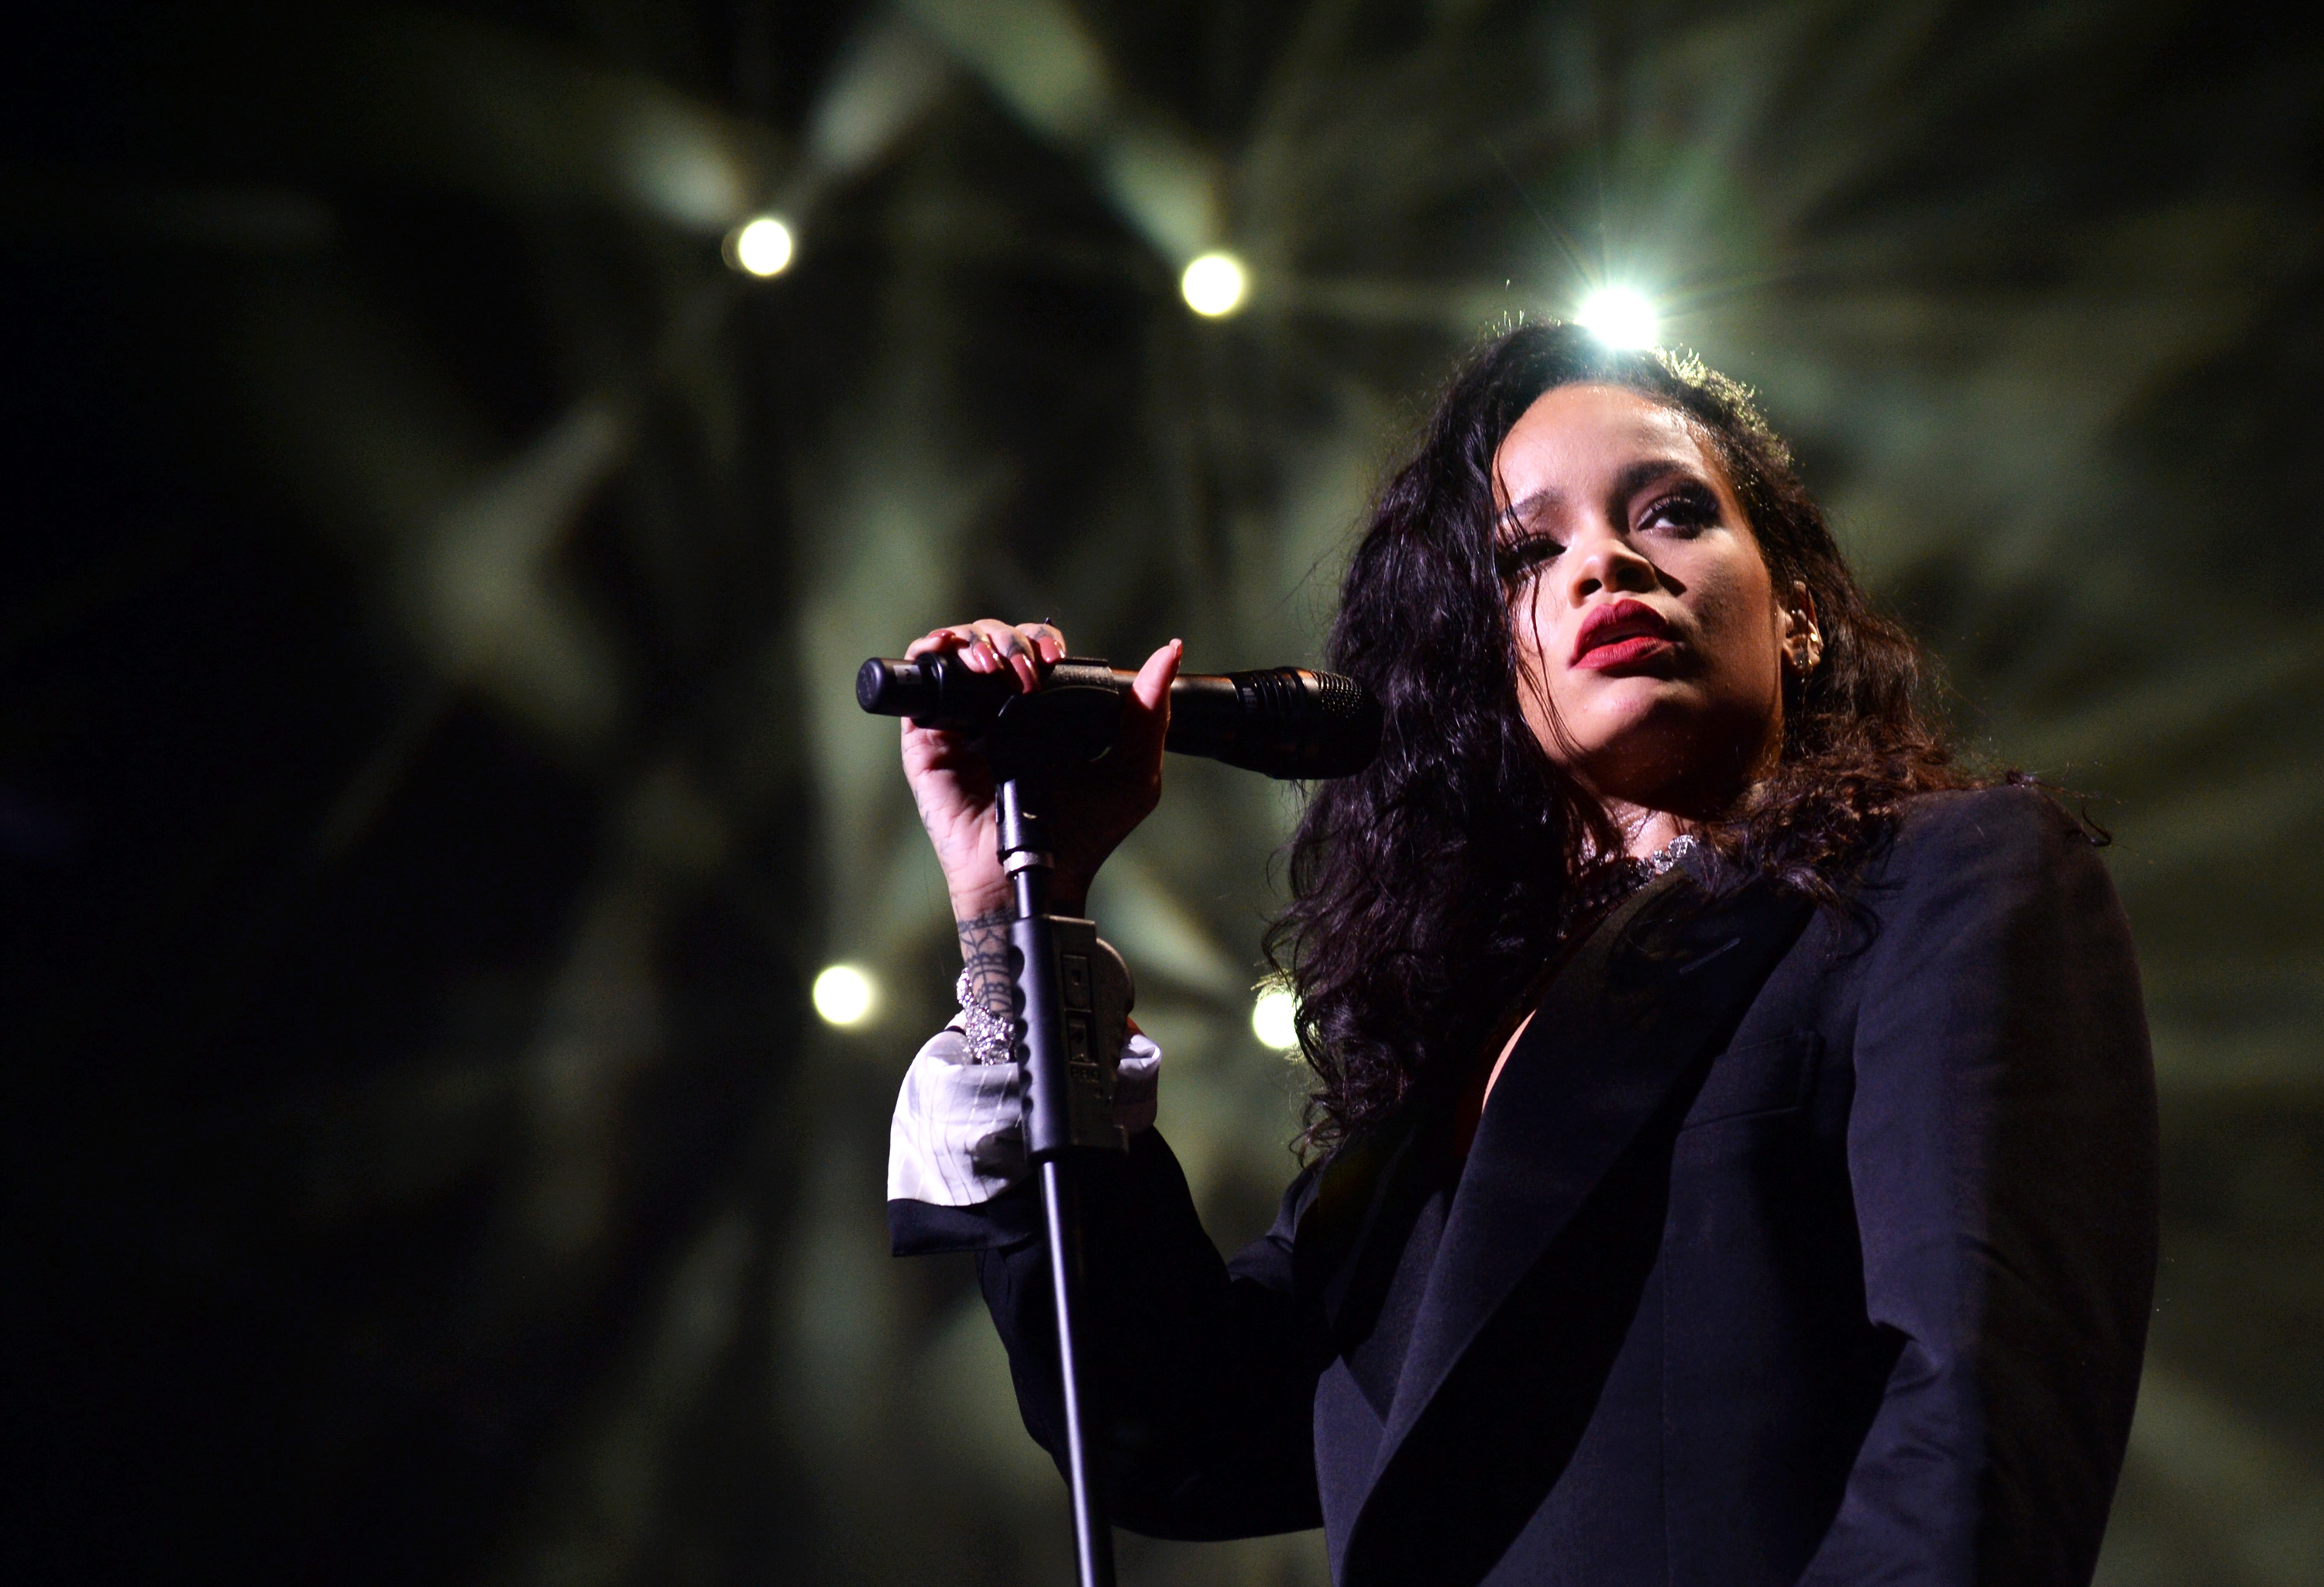 Rihanna Looks 'Towards the Sun' in New Song for Animated Film